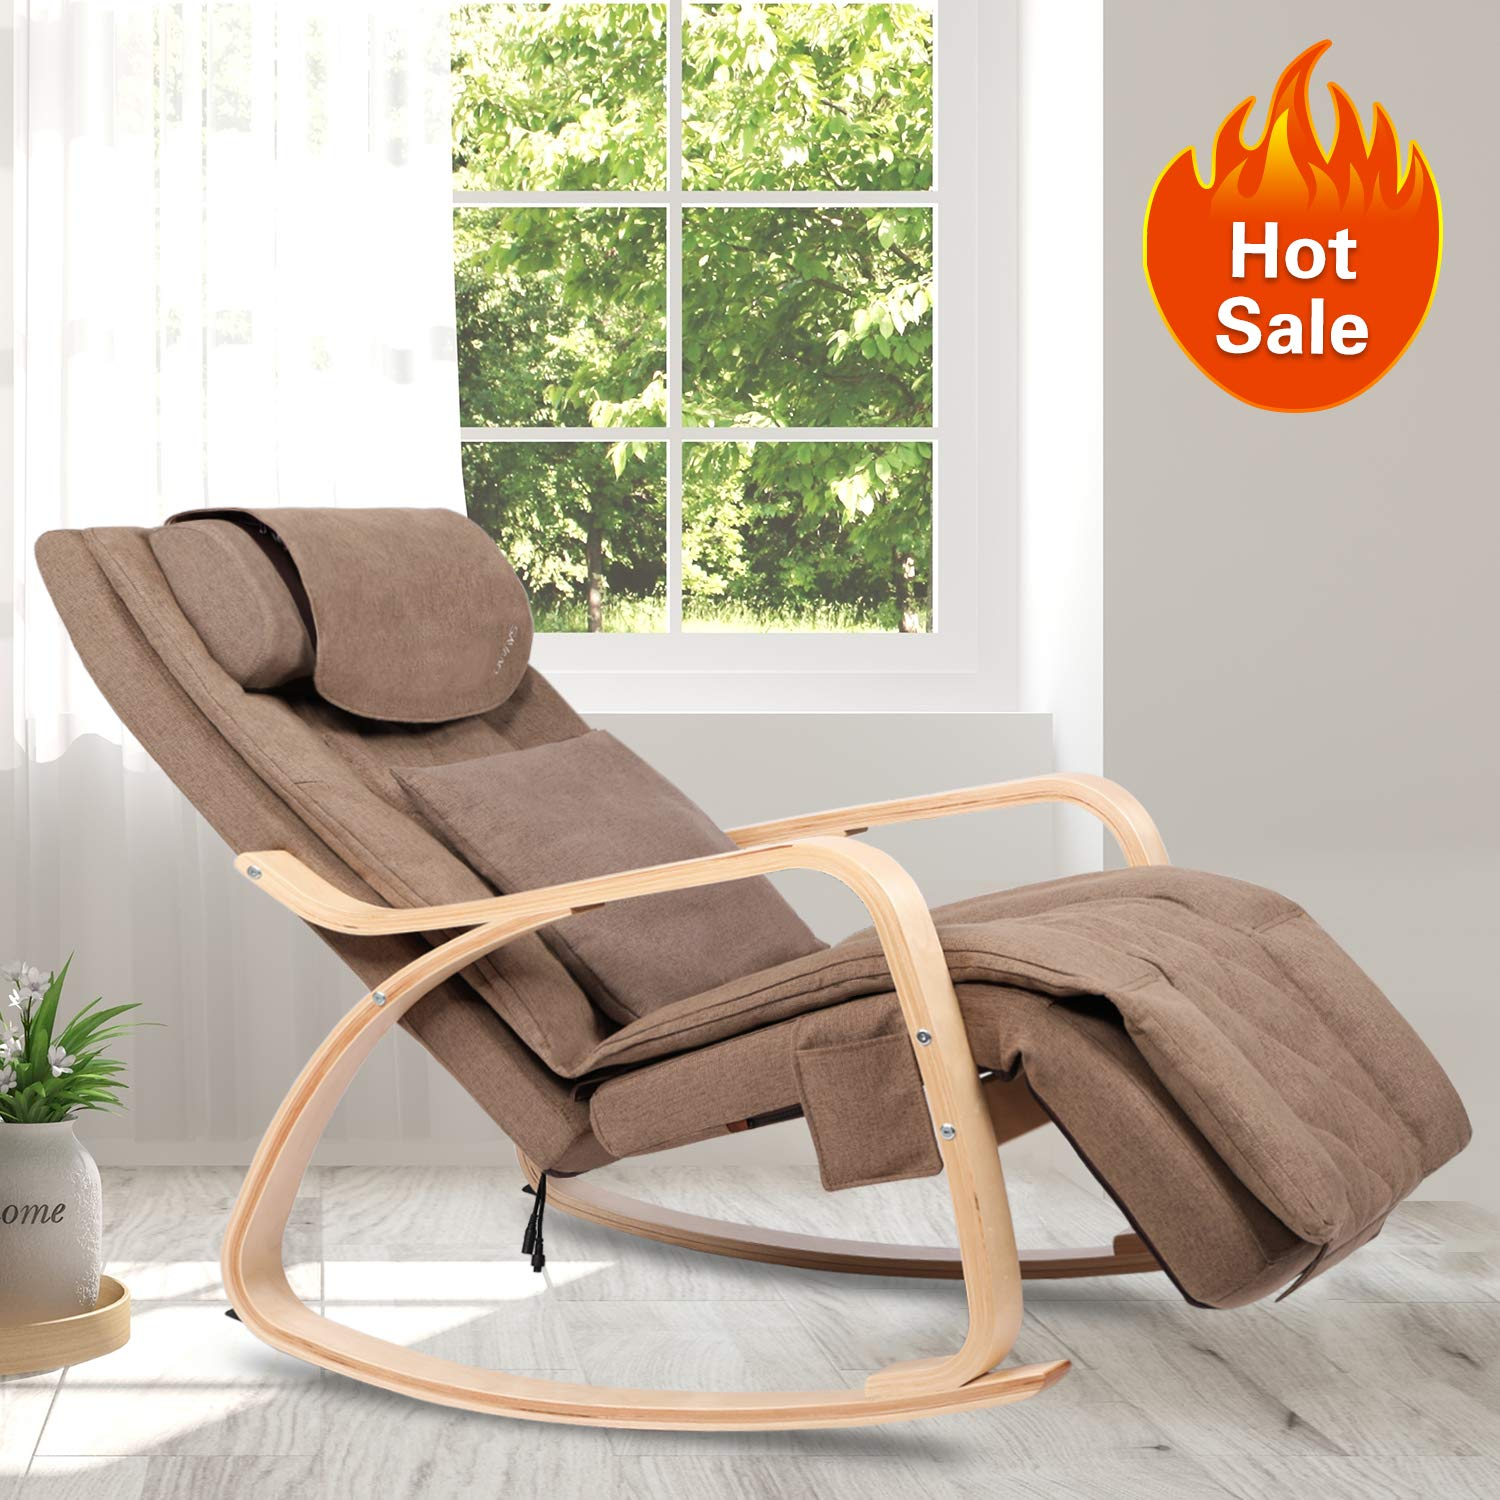 OWAYS Massage Chair 3D Full Back Massager, Rocking Design, Adjustable Pillow, Vibrating and Heating, 6 Massage Modes, Wooden Handrail, Linen Cover with Diamond Design by OWAYS